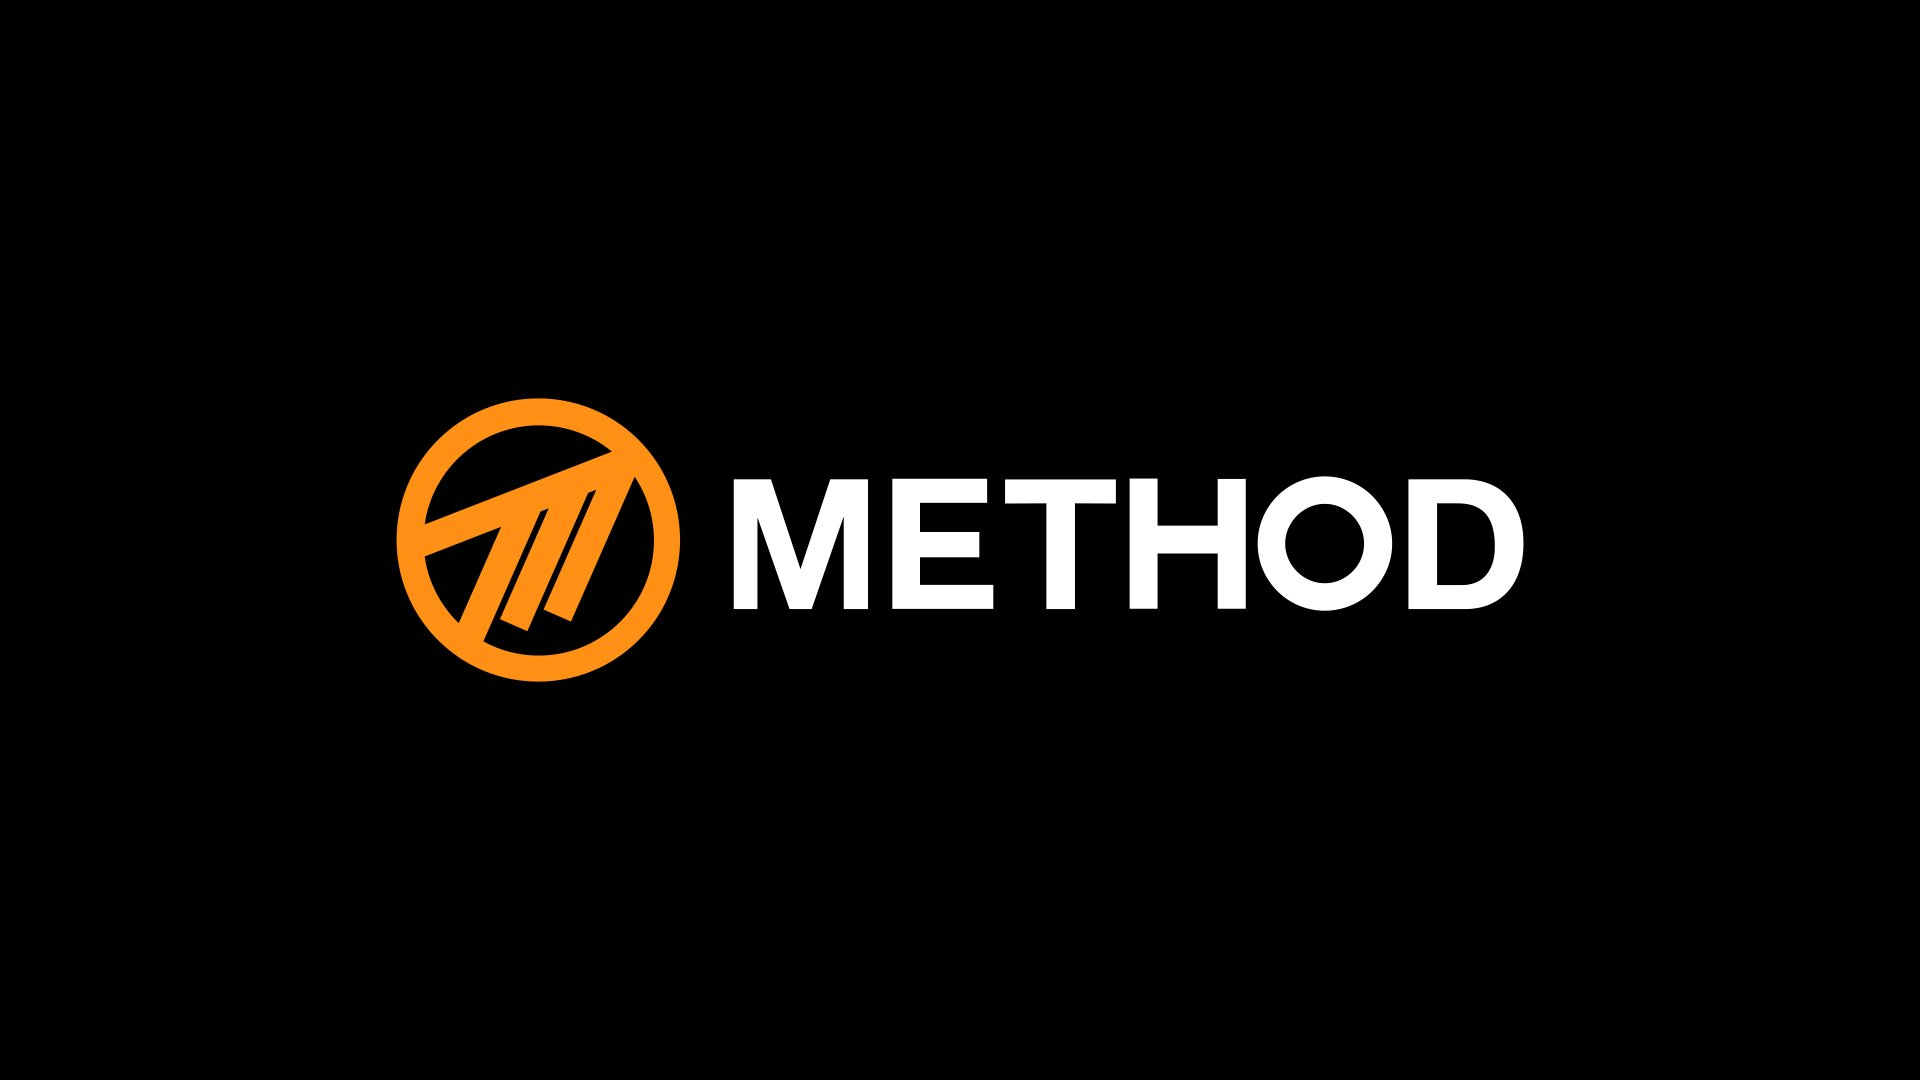 Method - Professional Esports Organisation, WoW Guides